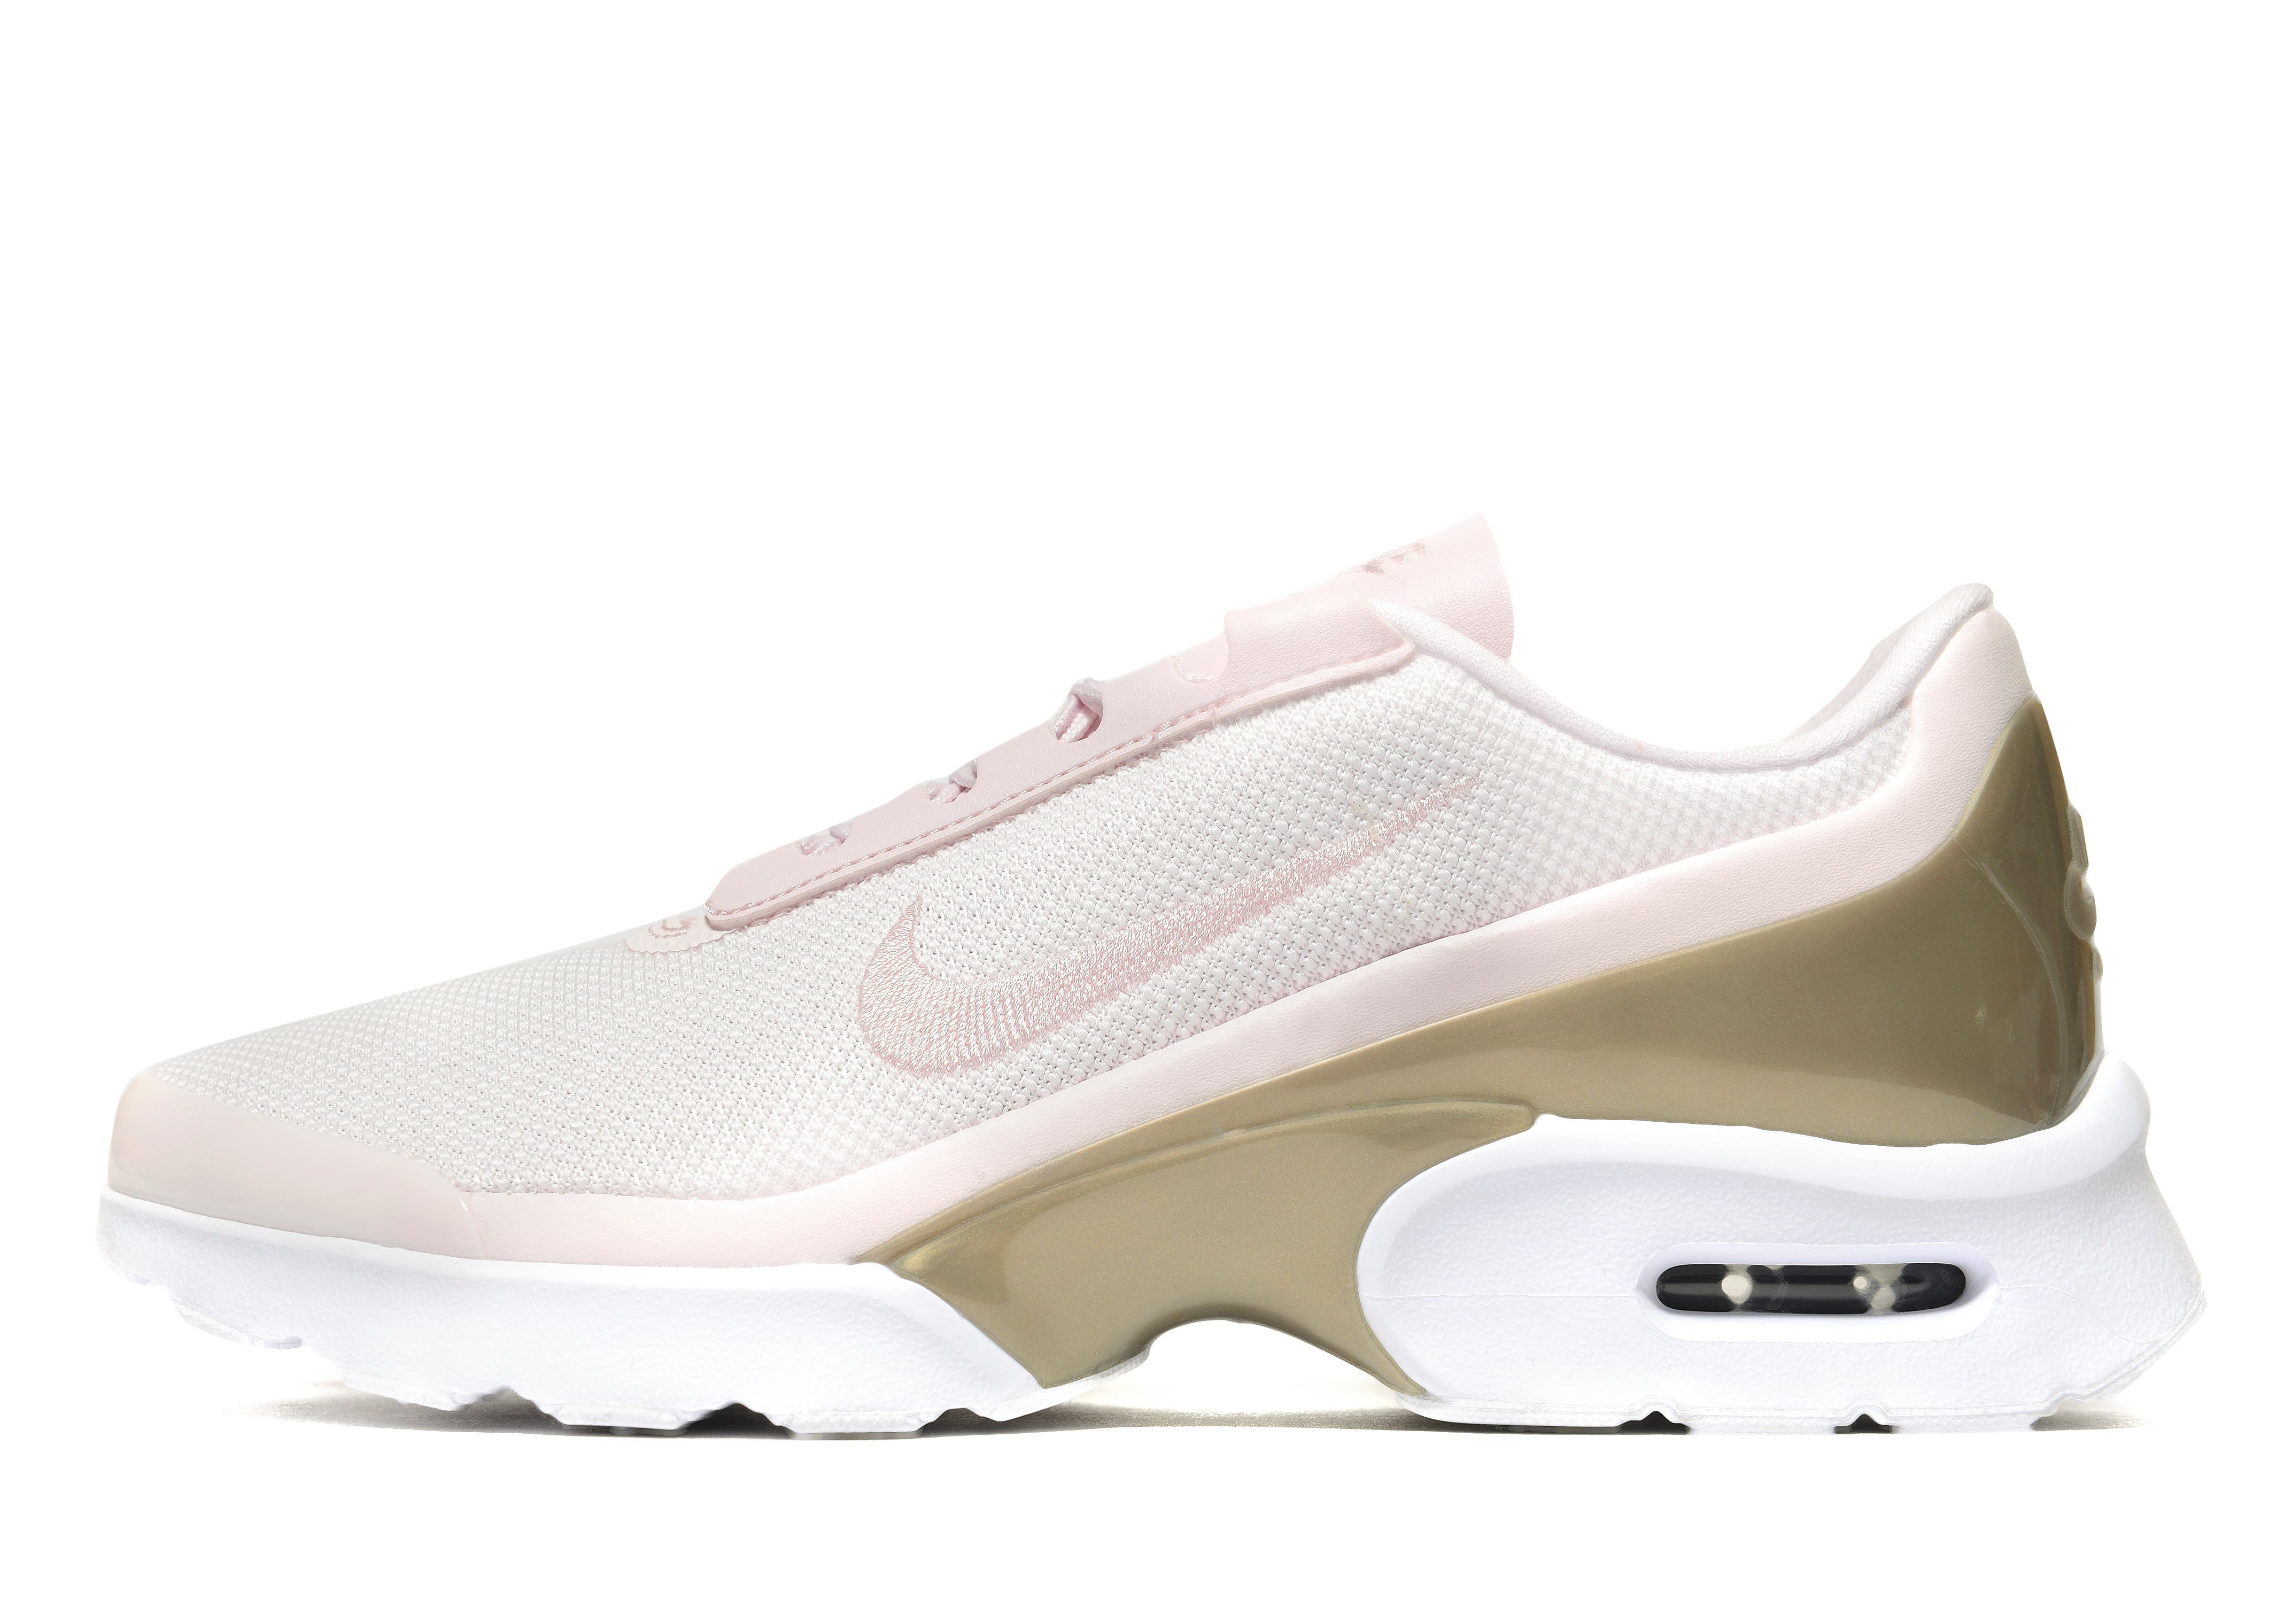 Nike Air Max Jewell Premium Women's